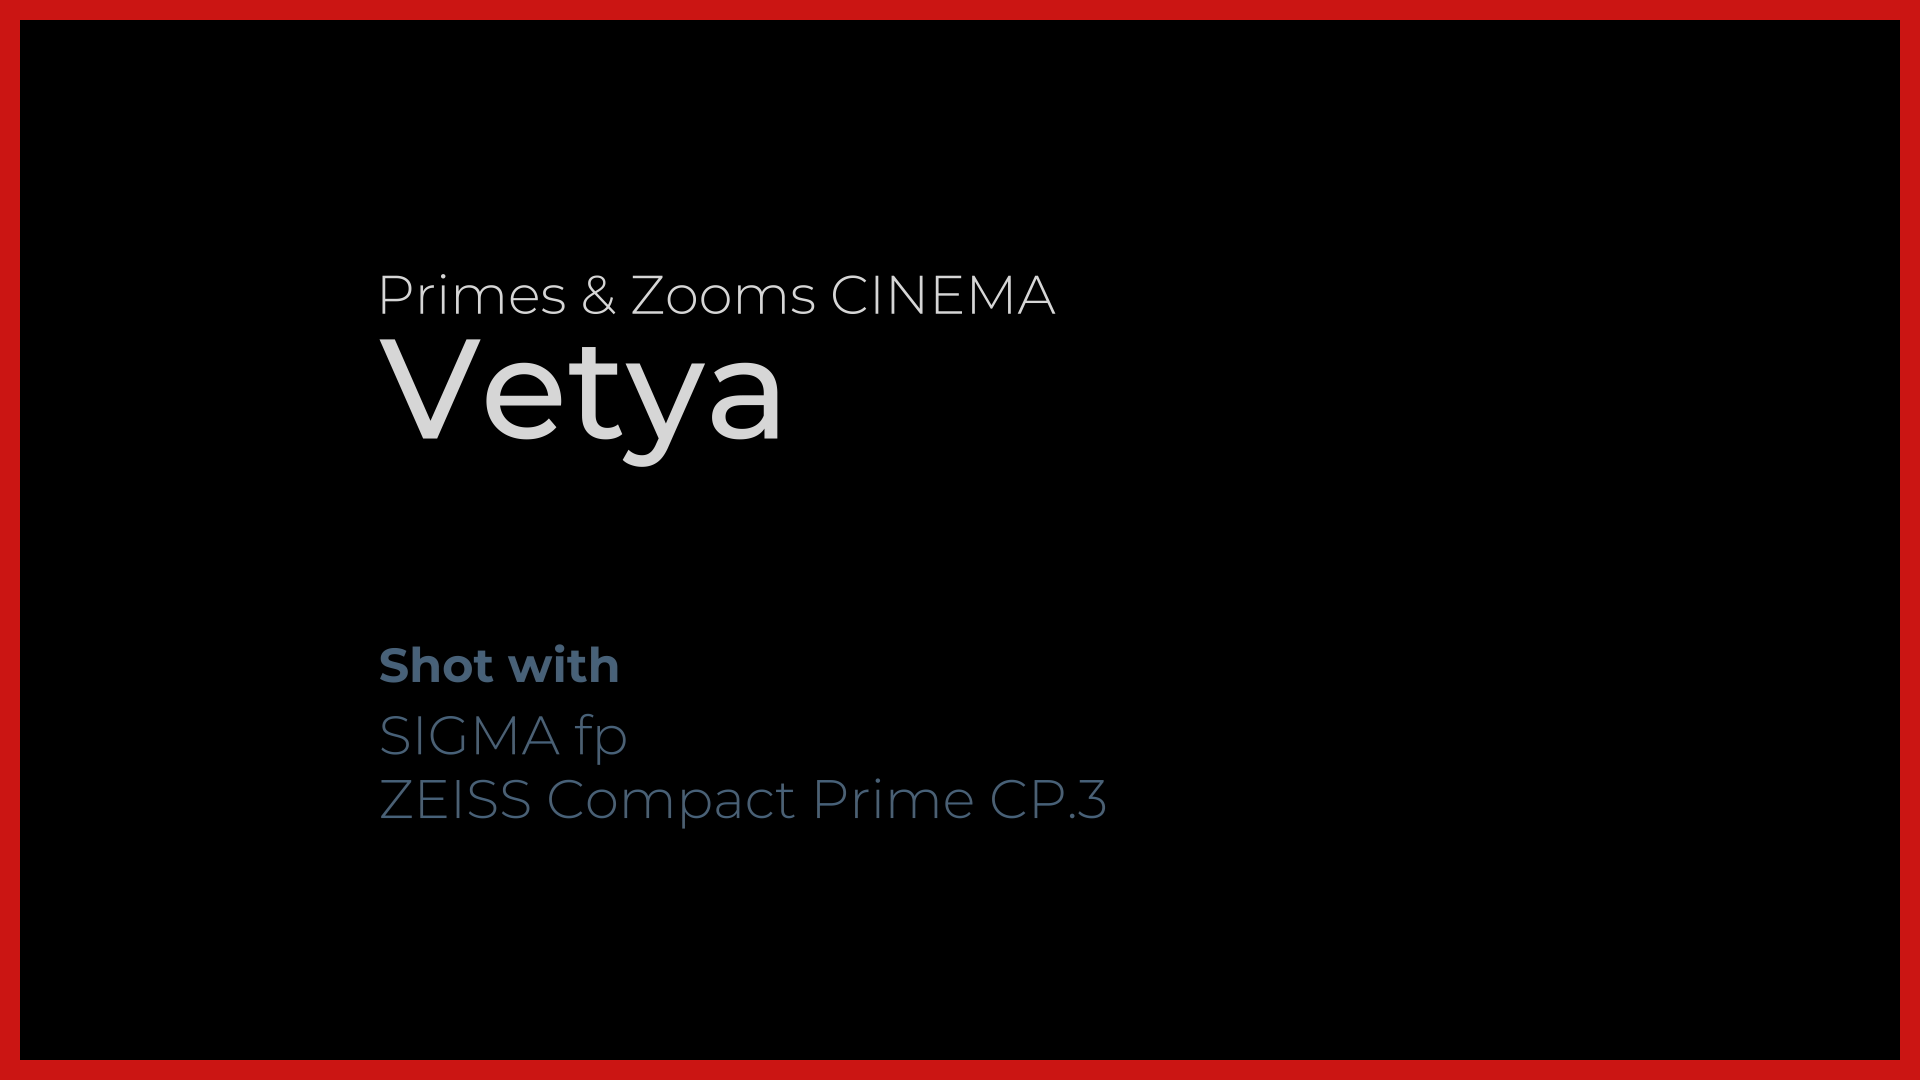 Primes and zooms Cinema Feature: Vetya